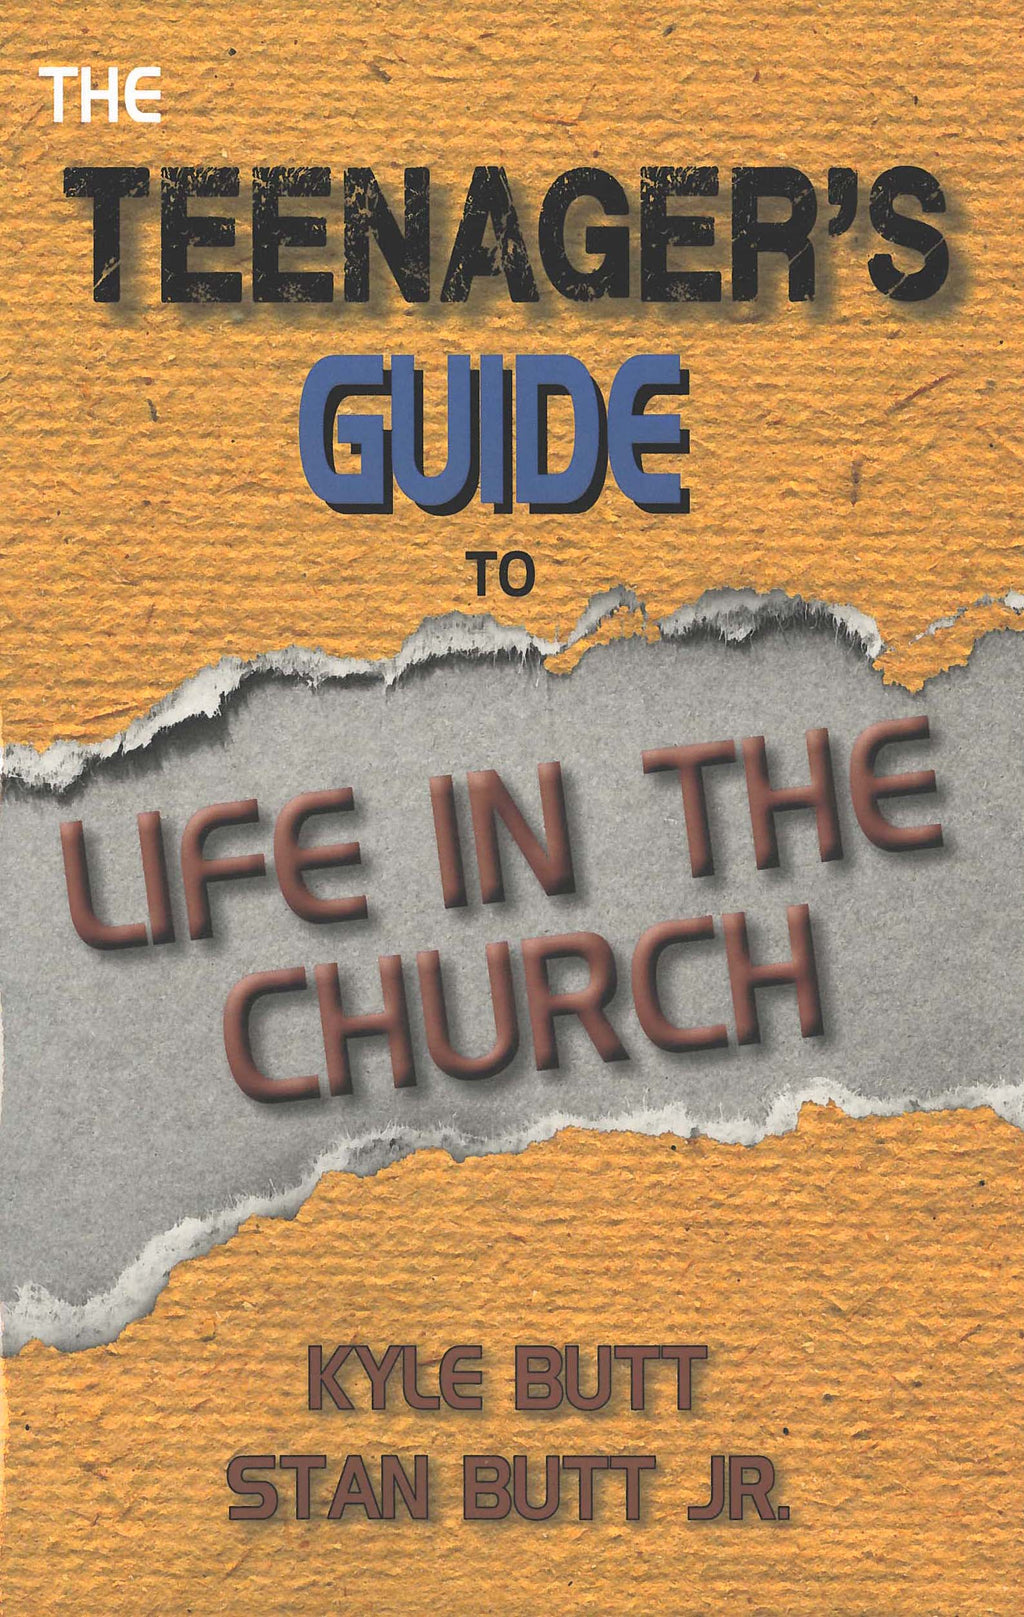 Teenager's Guide to Life in the Church